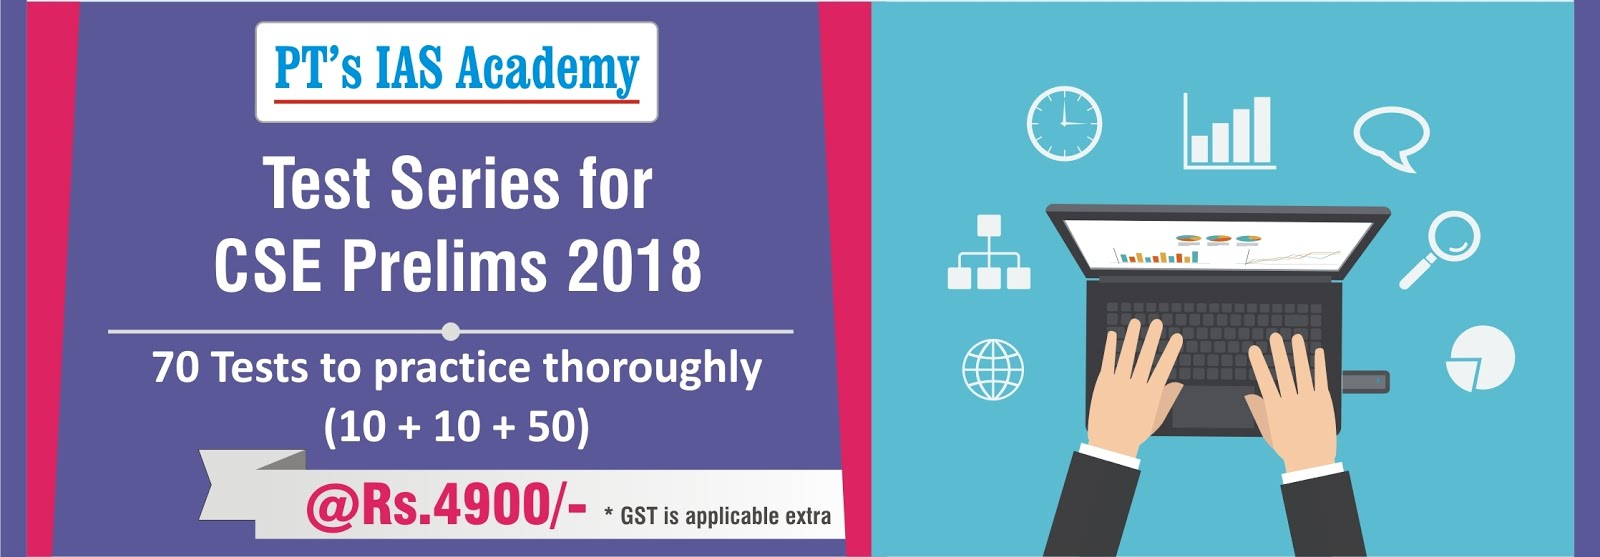 Test Series for CSE Prelims 2018